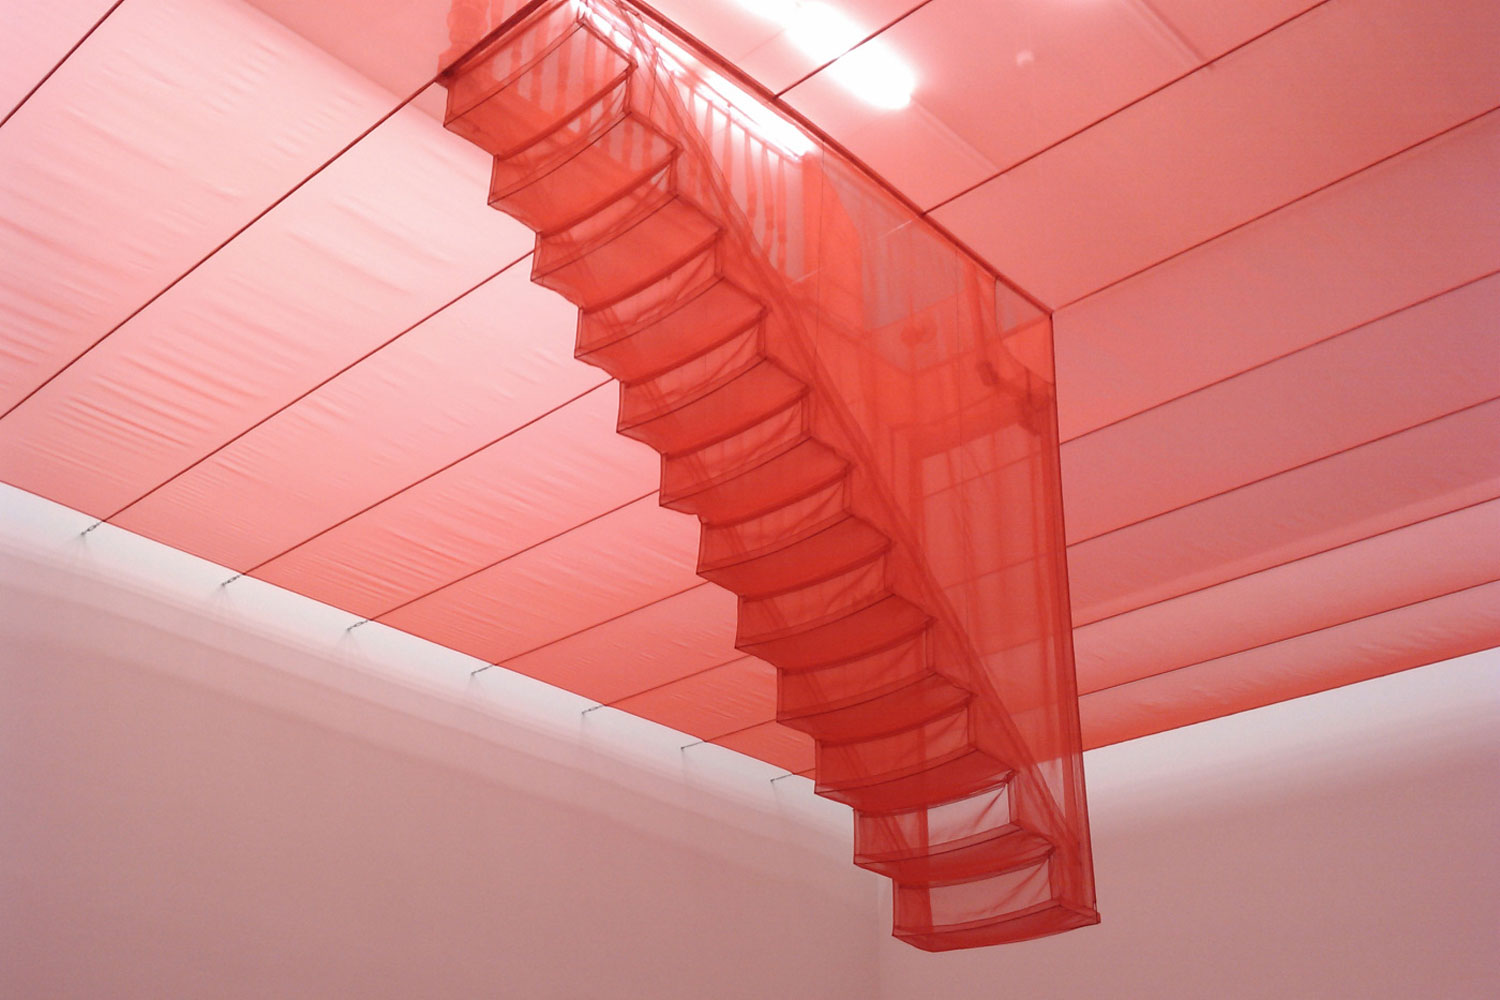 do ho suh sewn fabric sculptures stairs